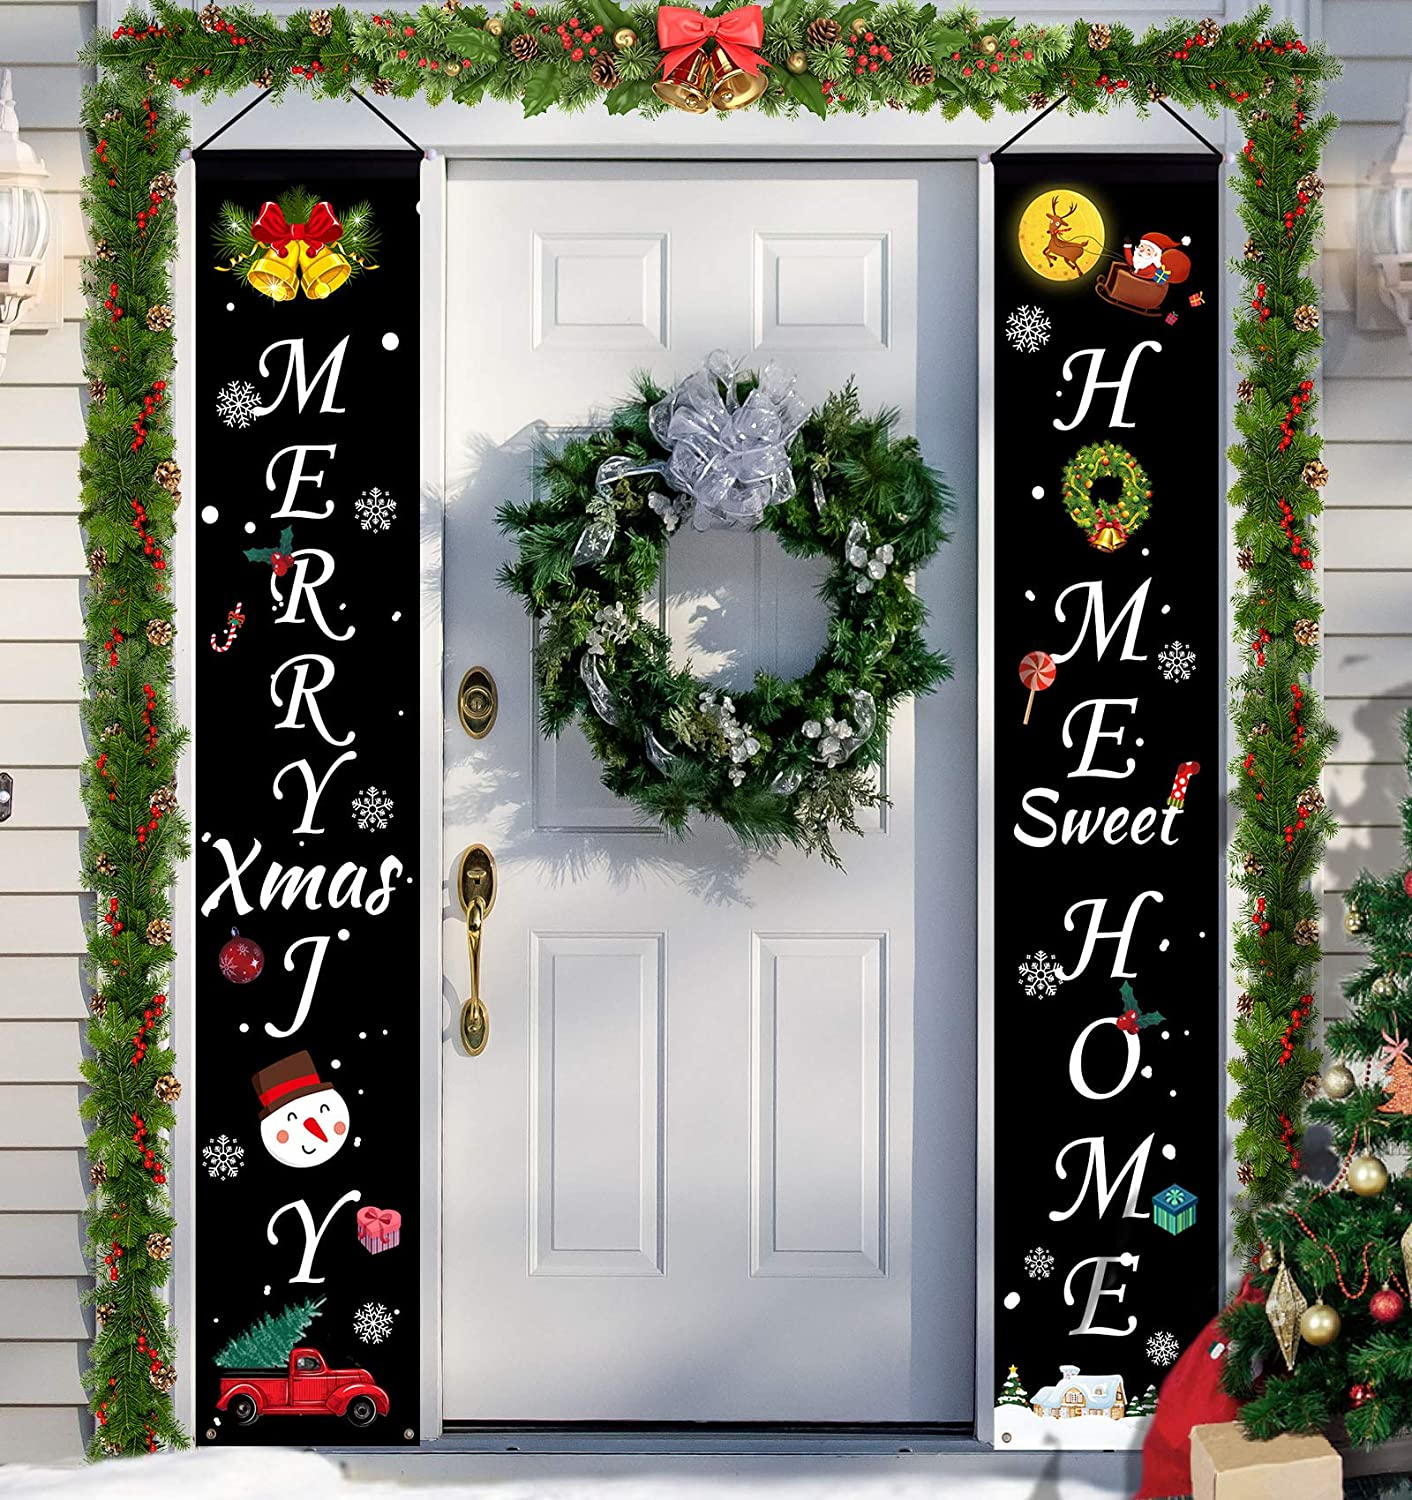 HexyHair Merry Christmas Decorations Banner, Outdoor Christmas Porch Sign Hanging Welcome Banners for Sweet Home Indoor Front Door Xmas Decor